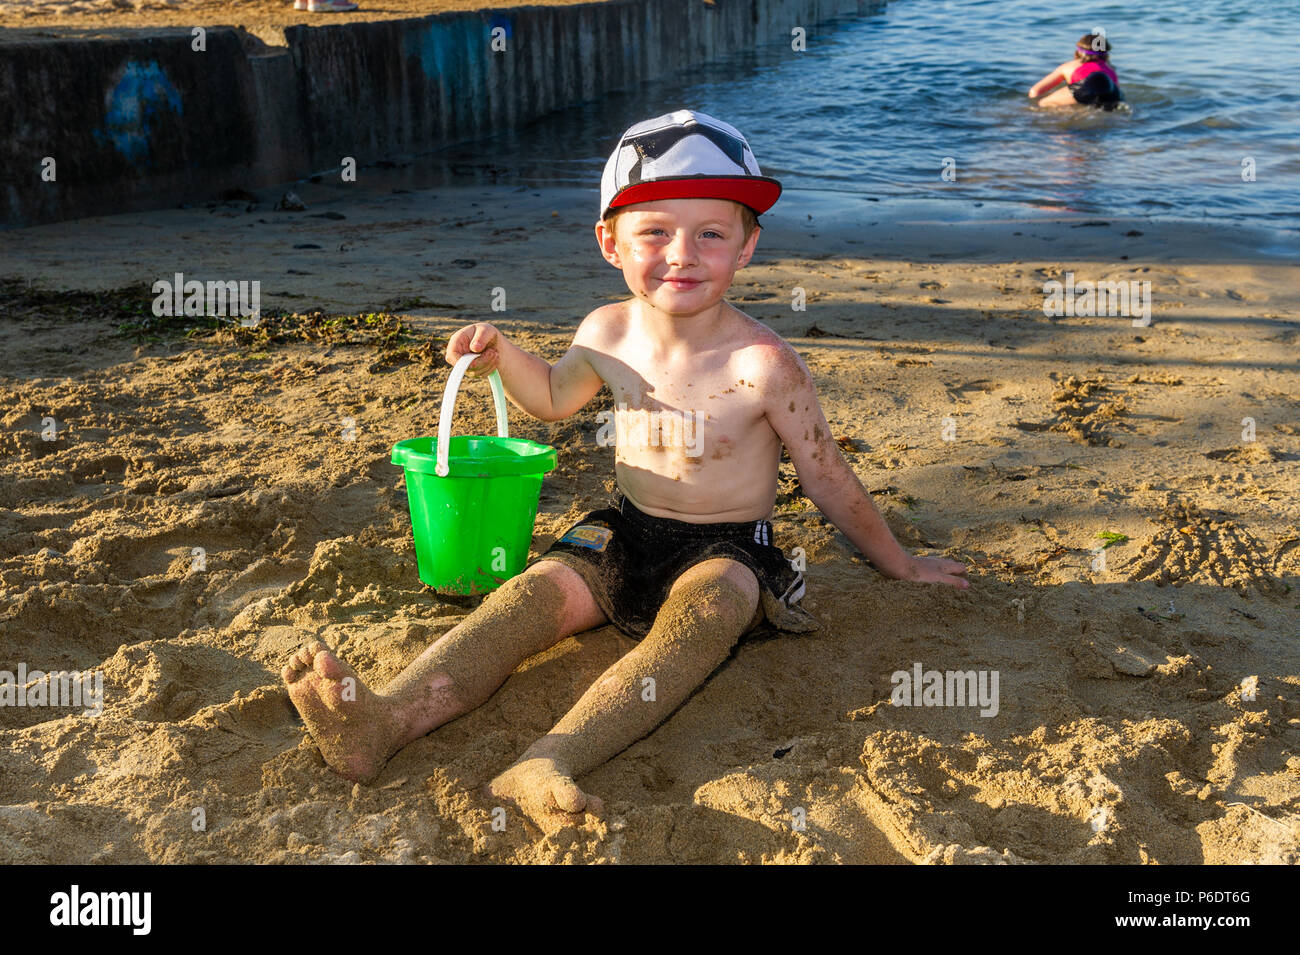 Bantry, West Cork, Ireland. 29th June, 2018. After a scorchingly hot day, 5 year old Kasper Keane from Bantry plays on the beach as the sun goes down in Bantry. The rest of the weekend will be cooler than previous days with rain forecast for next week. Credit: Andy Gibson/Alamy Live News. - Stock Image